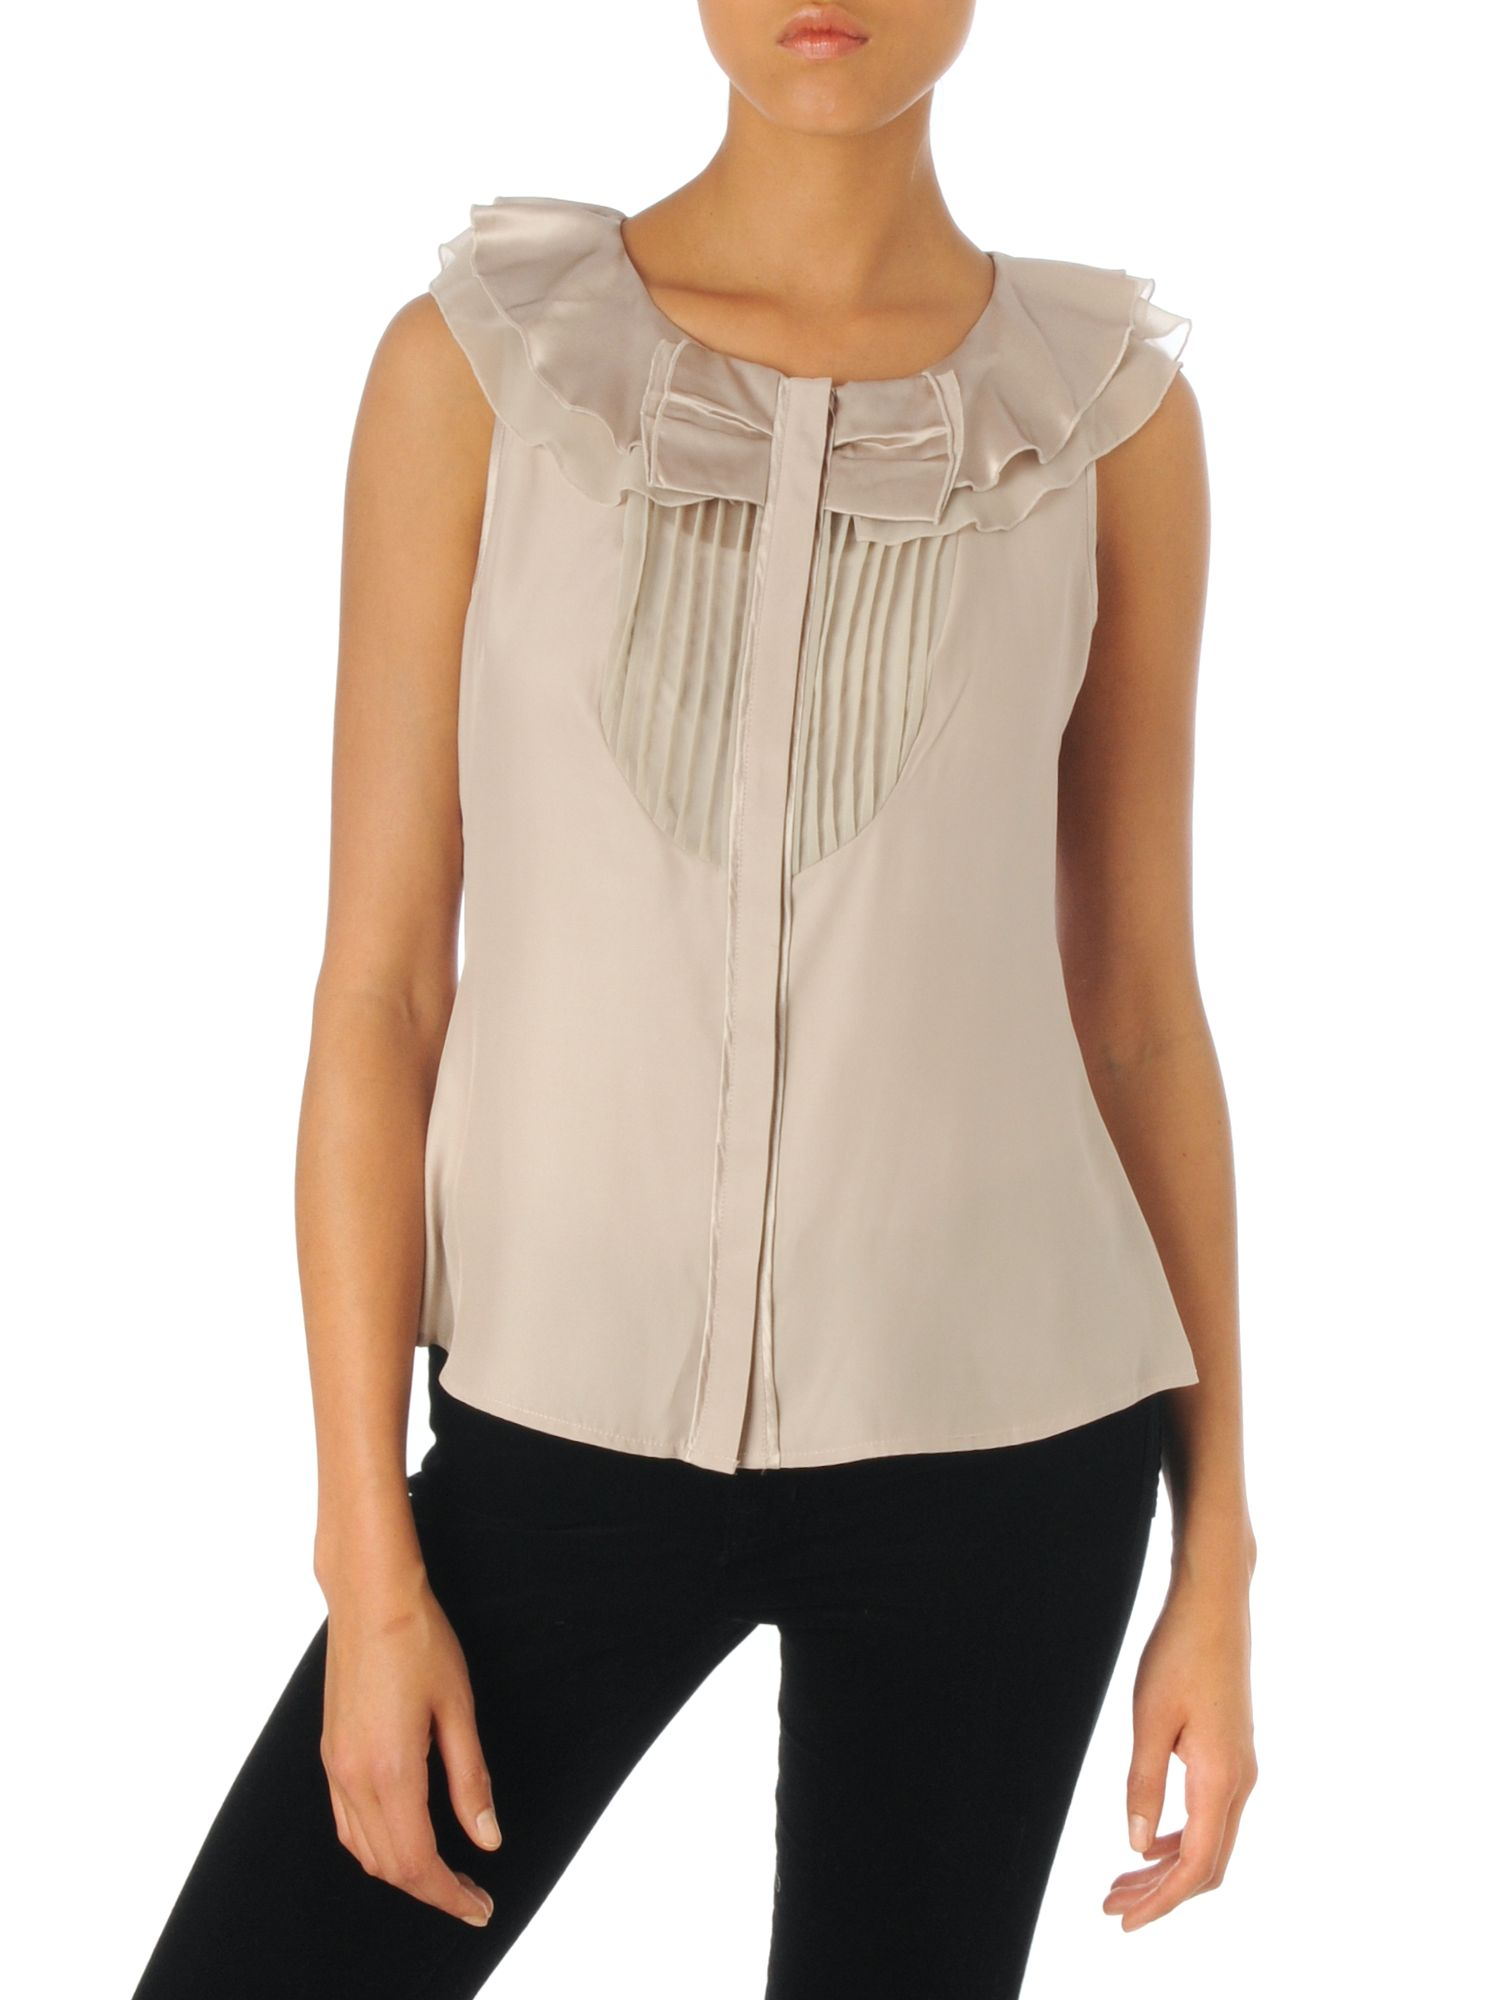 Untold Sleeveless bow front blouse - Champagne 8 product image